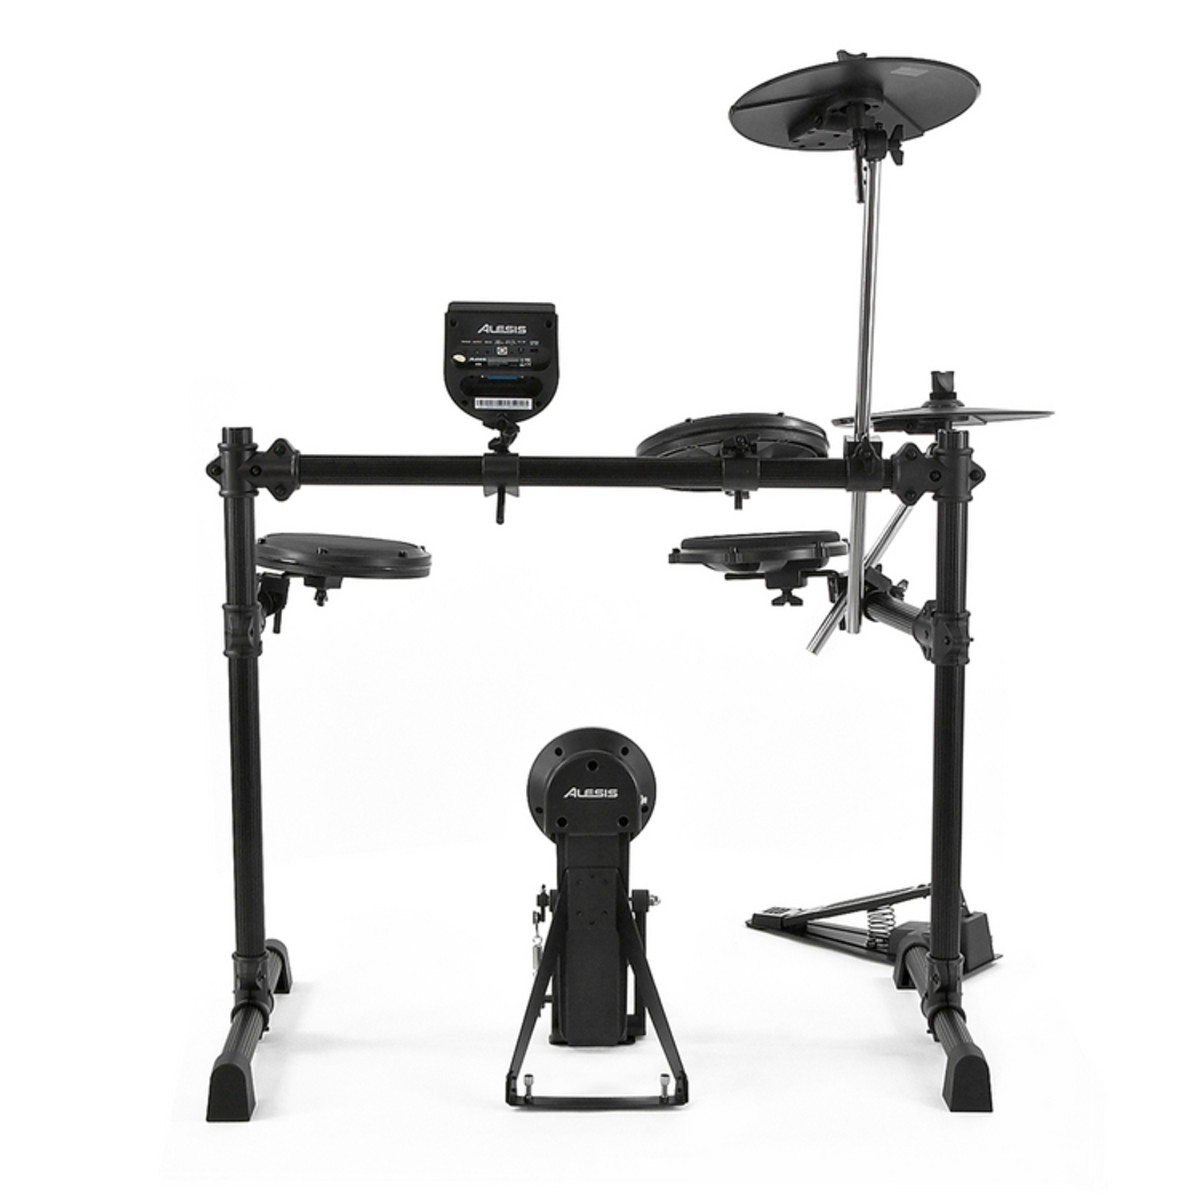 alesis dm6 usb express electronic drum kit nearly new at gear4music. Black Bedroom Furniture Sets. Home Design Ideas